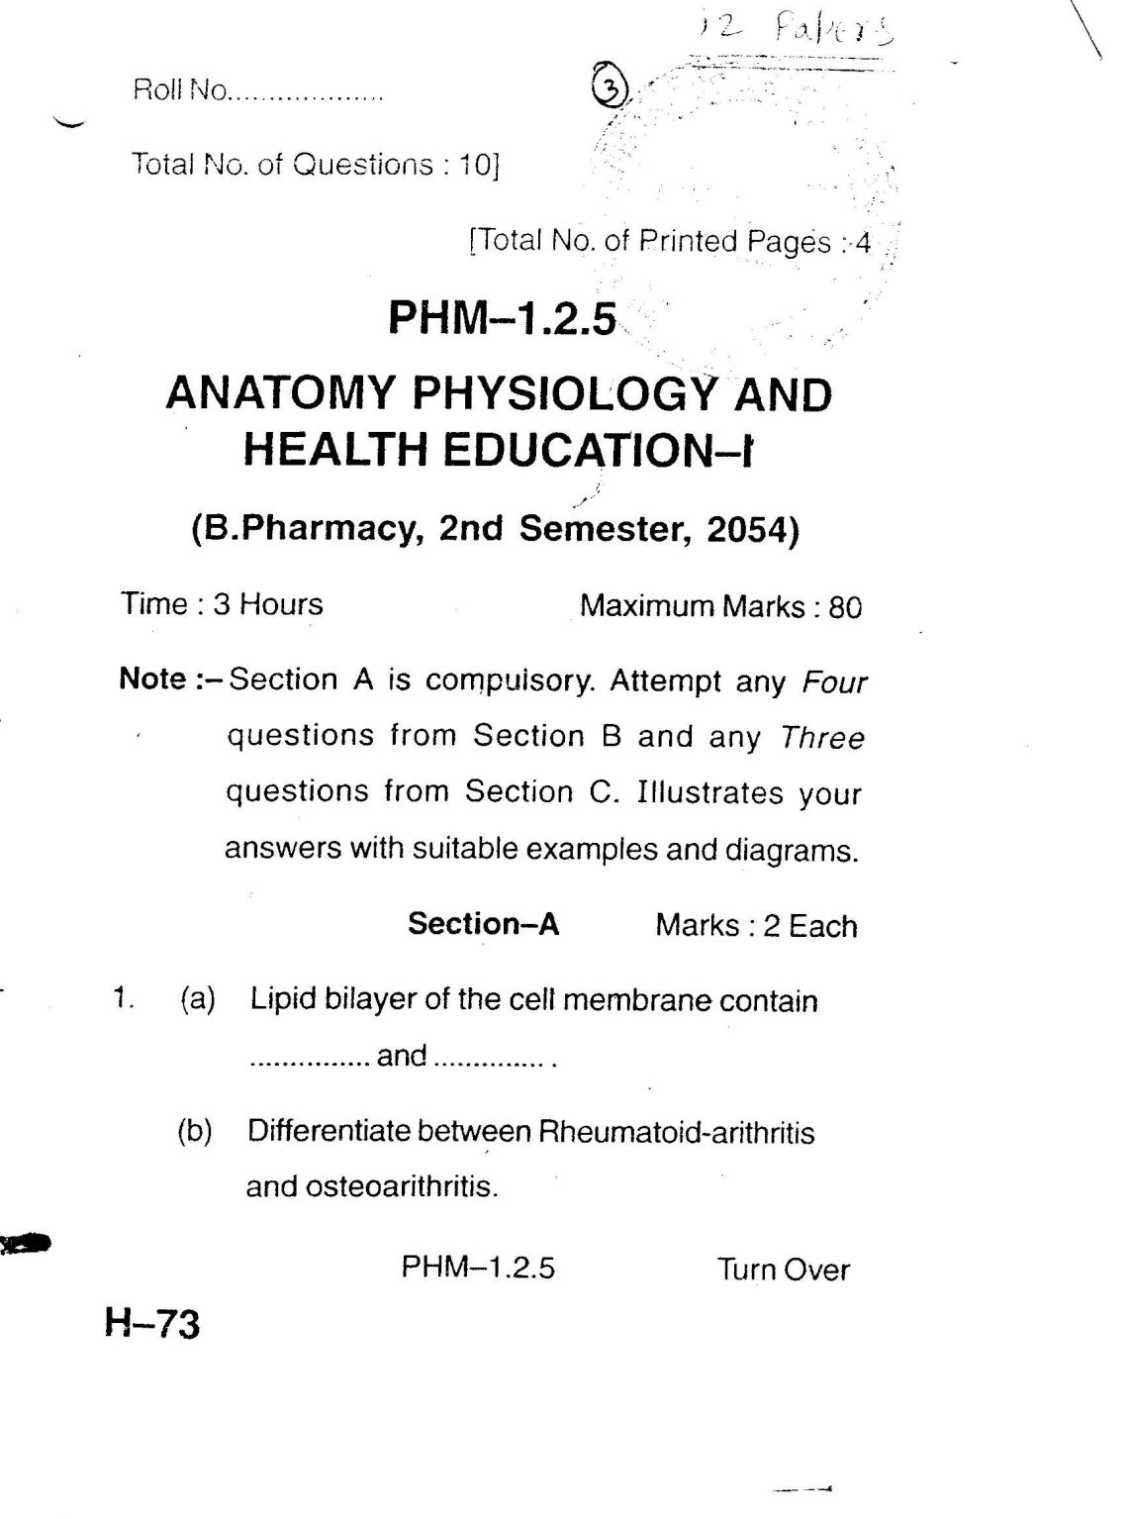 Niedlich Anatomy And Physiology Exam 1 With Answers Zeitgenössisch ...